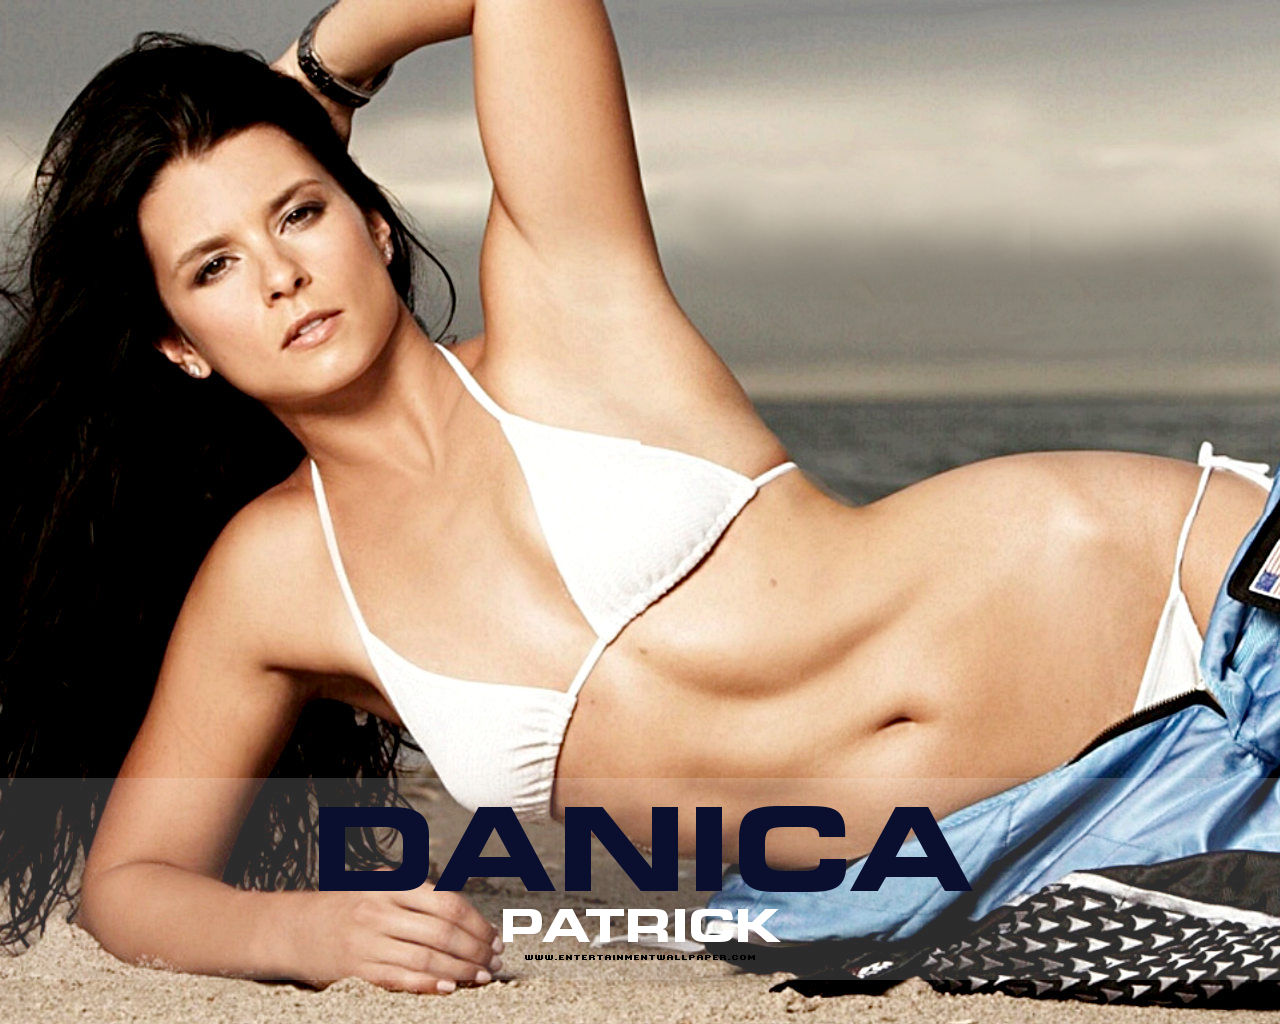 Erotica Danica Patrick nude (85 photo), Tits, Cleavage, Boobs, panties 2006